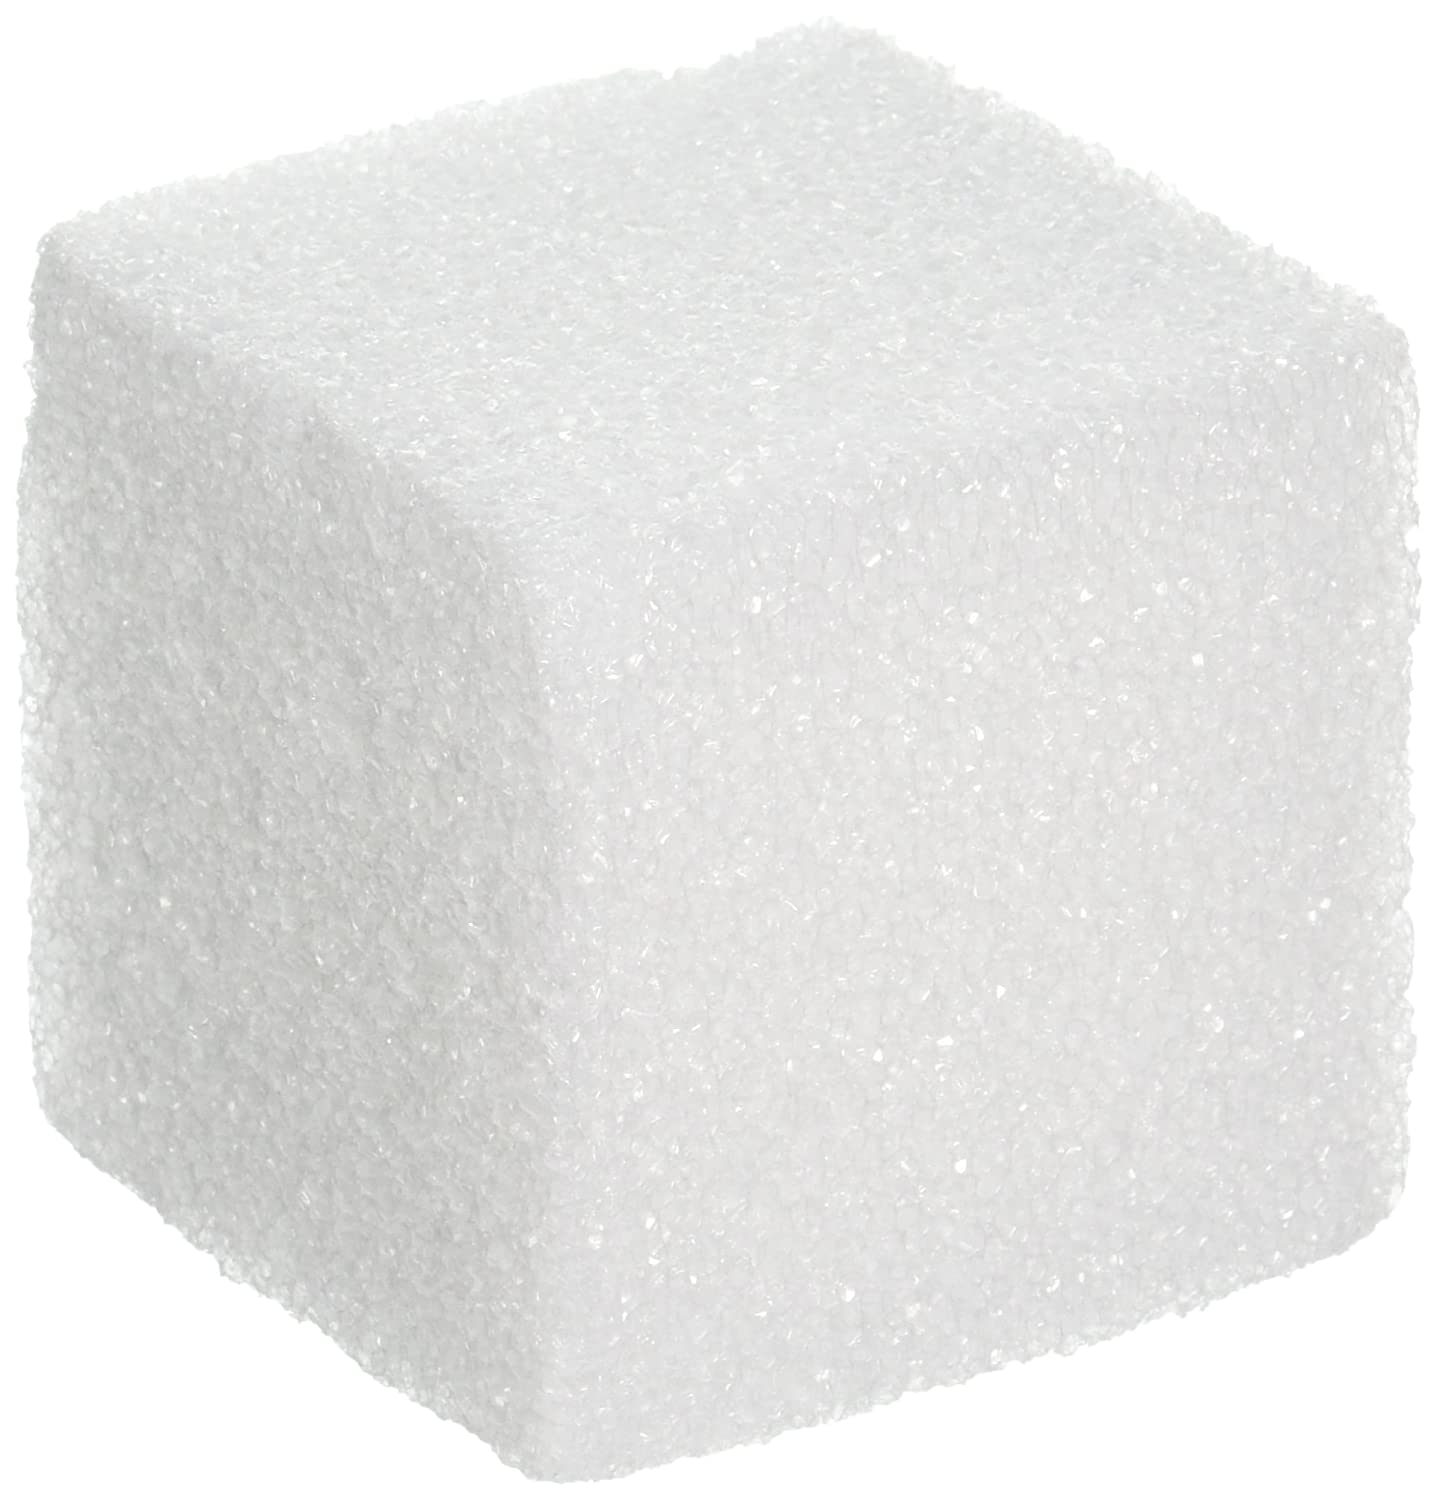 FloraCraft Styrofoam Shrink Wrapped Cube 3x3